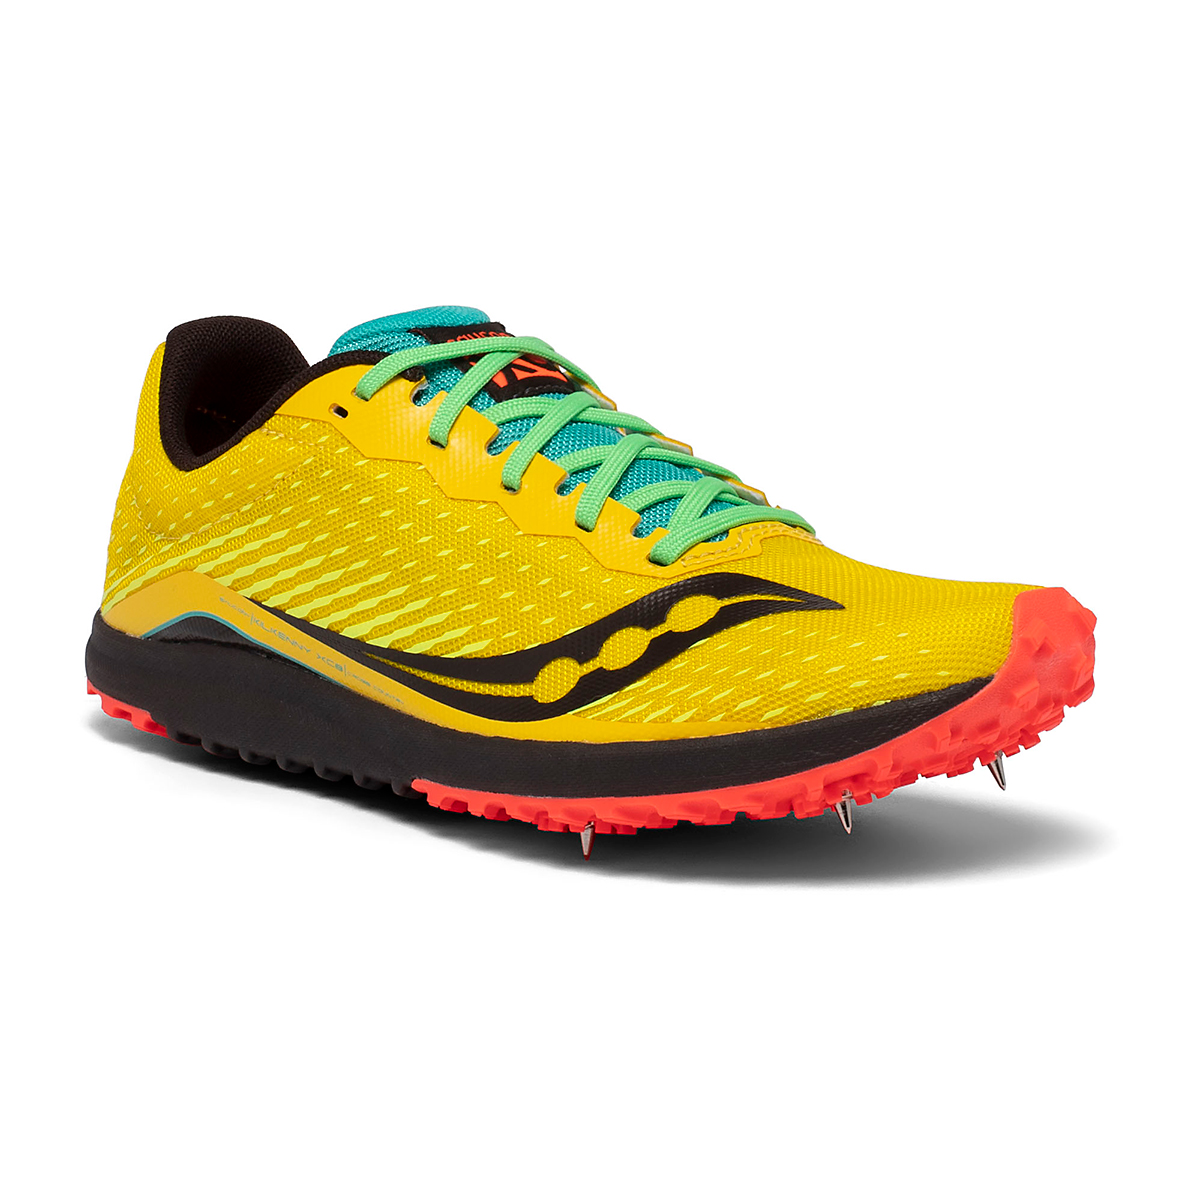 Men's Saucony Kilkenny XC8 Track Spikes - Color: Yellow Mutant - Size: 8 - Width: Regular, Yellow Mutant, large, image 5